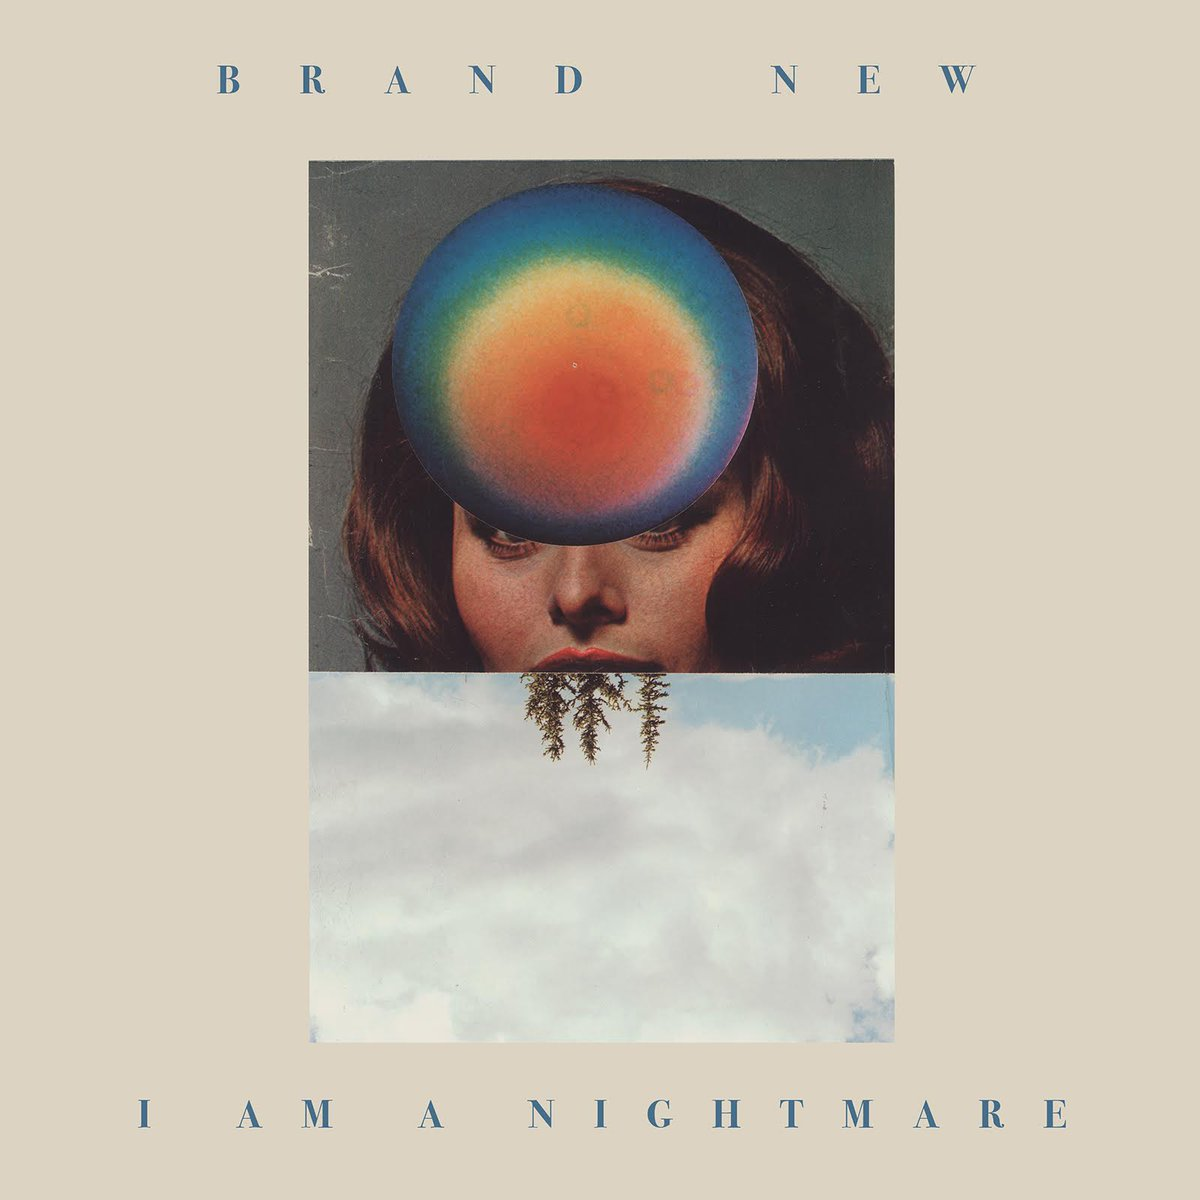 """I Am A Nightmare"" - now streaming! Presale of the 12"" Vinyl Single available at https://t.co/woomDWutsQ https://t.co/RhqQPCEHAt"